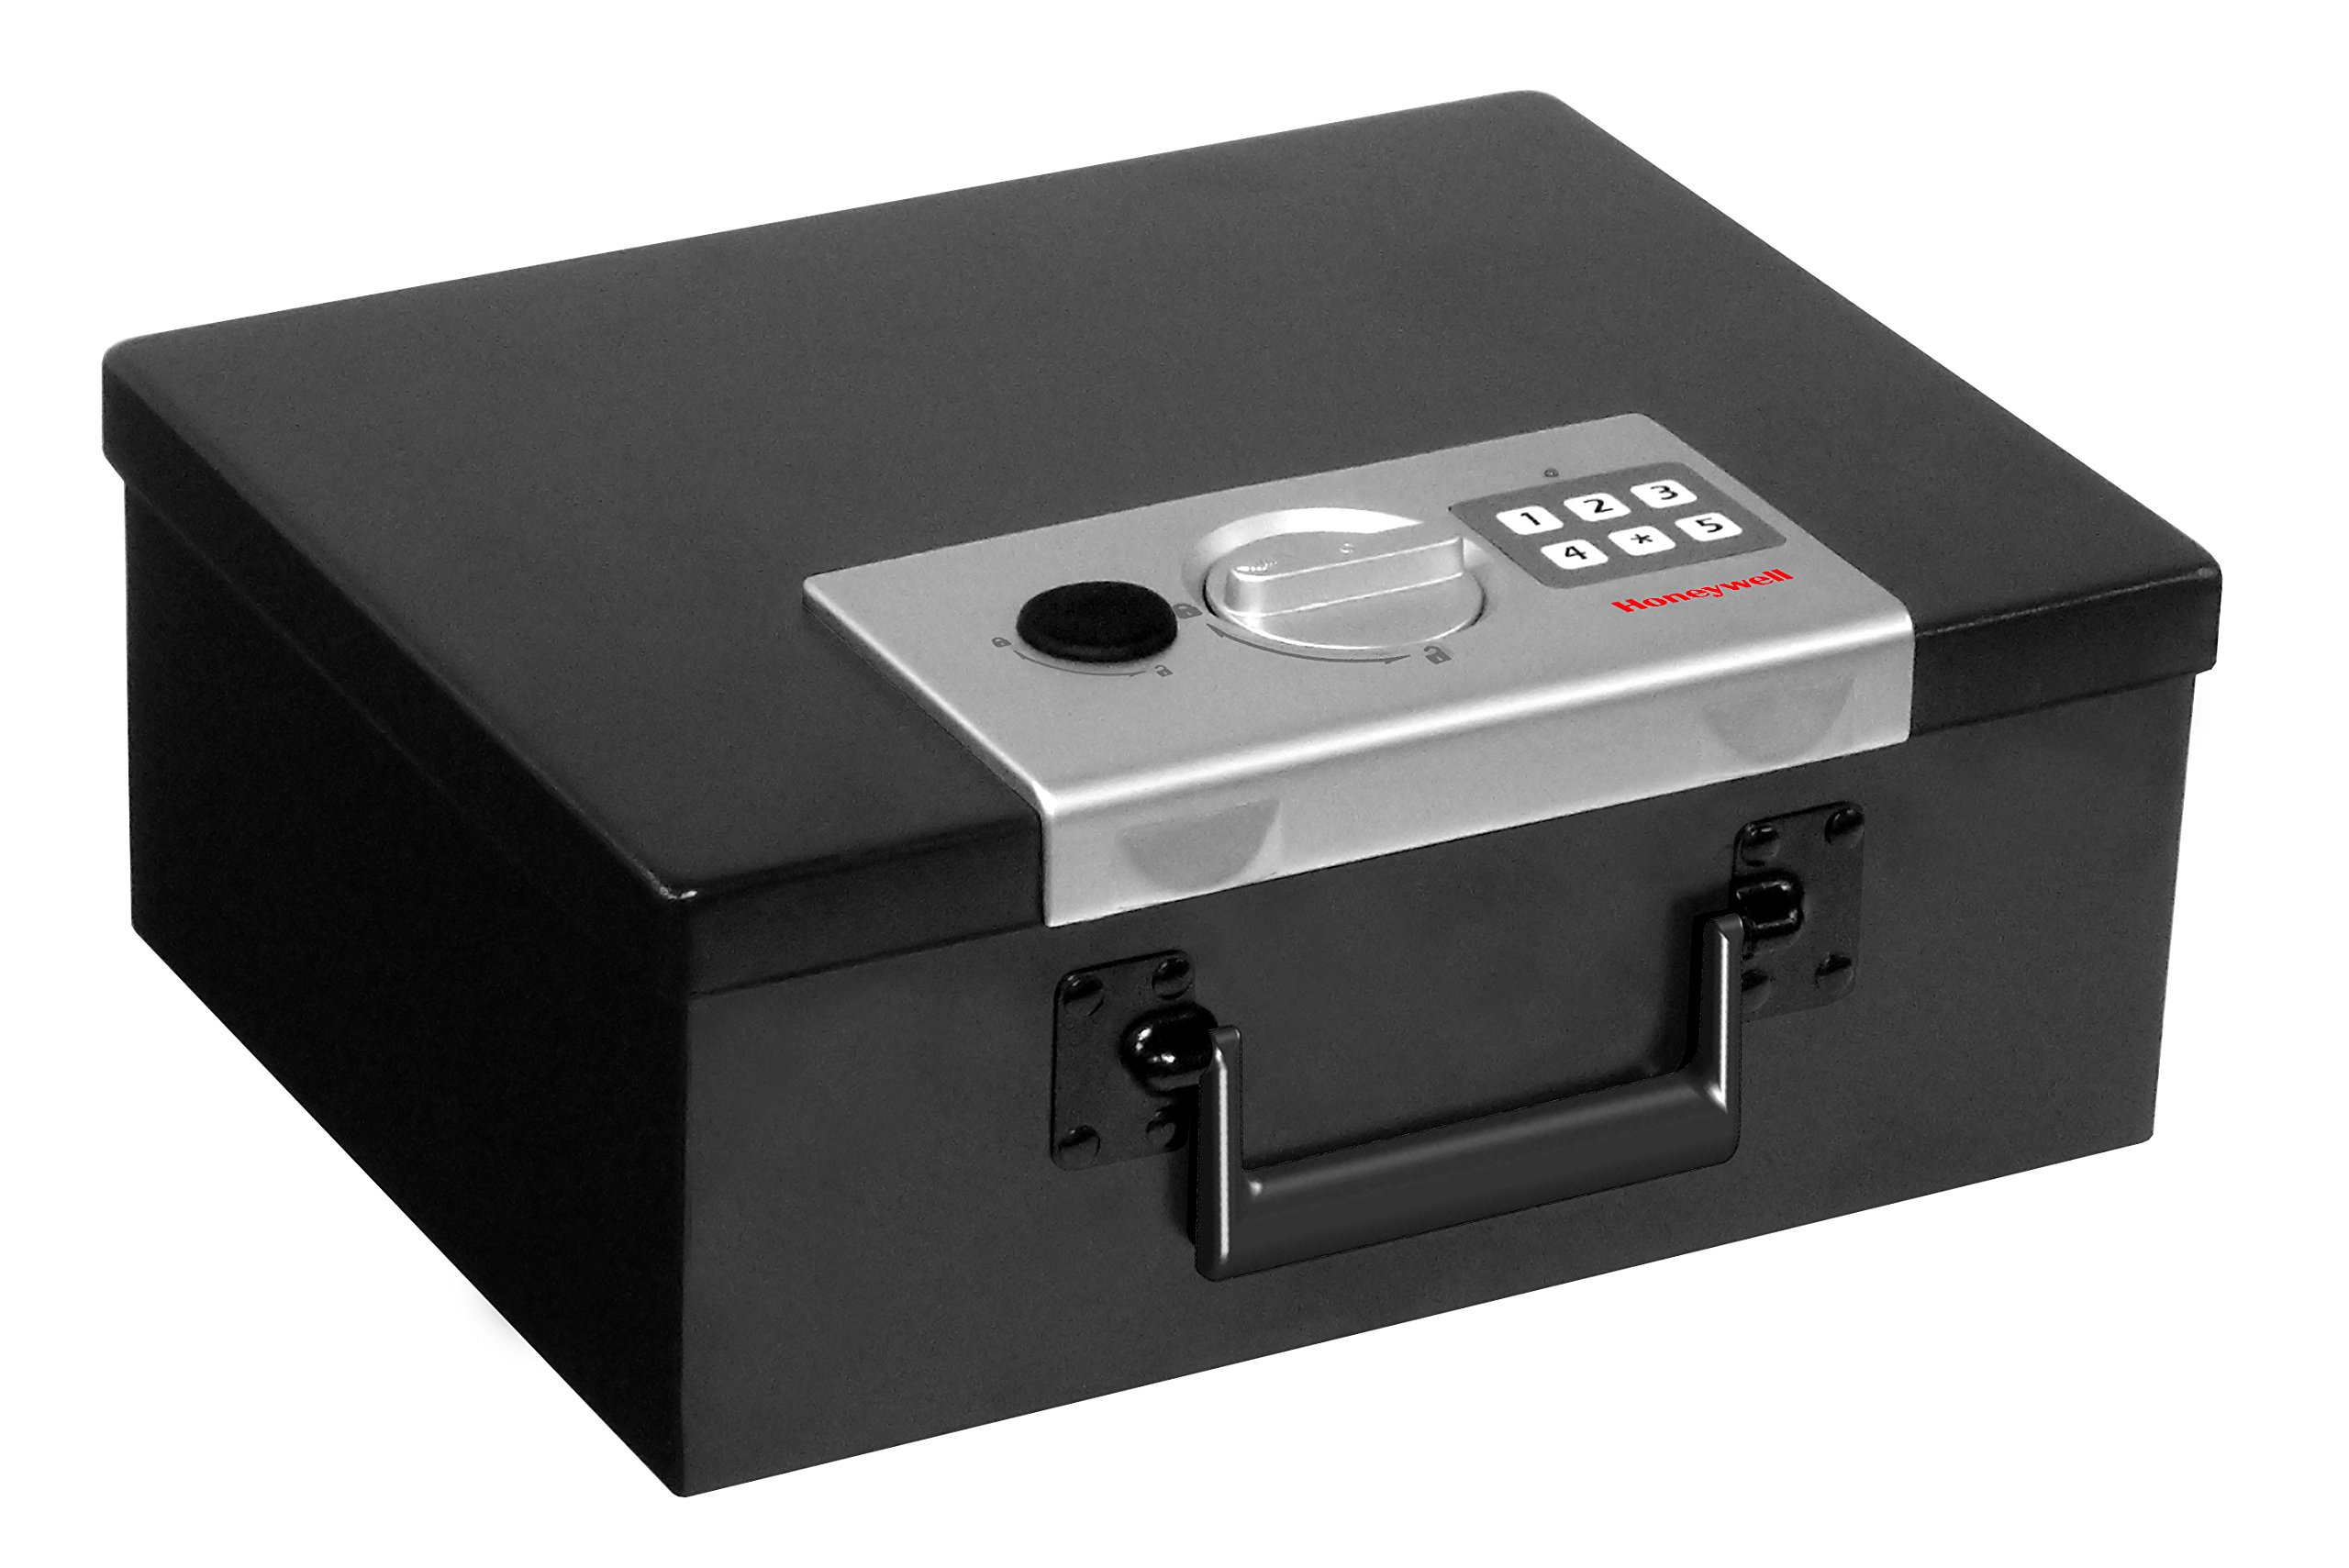 HONEYWELL - 6108 Fire Resistant Steel Security Safe Box with Digital Lock, 0.26-Cubic Feet, Black